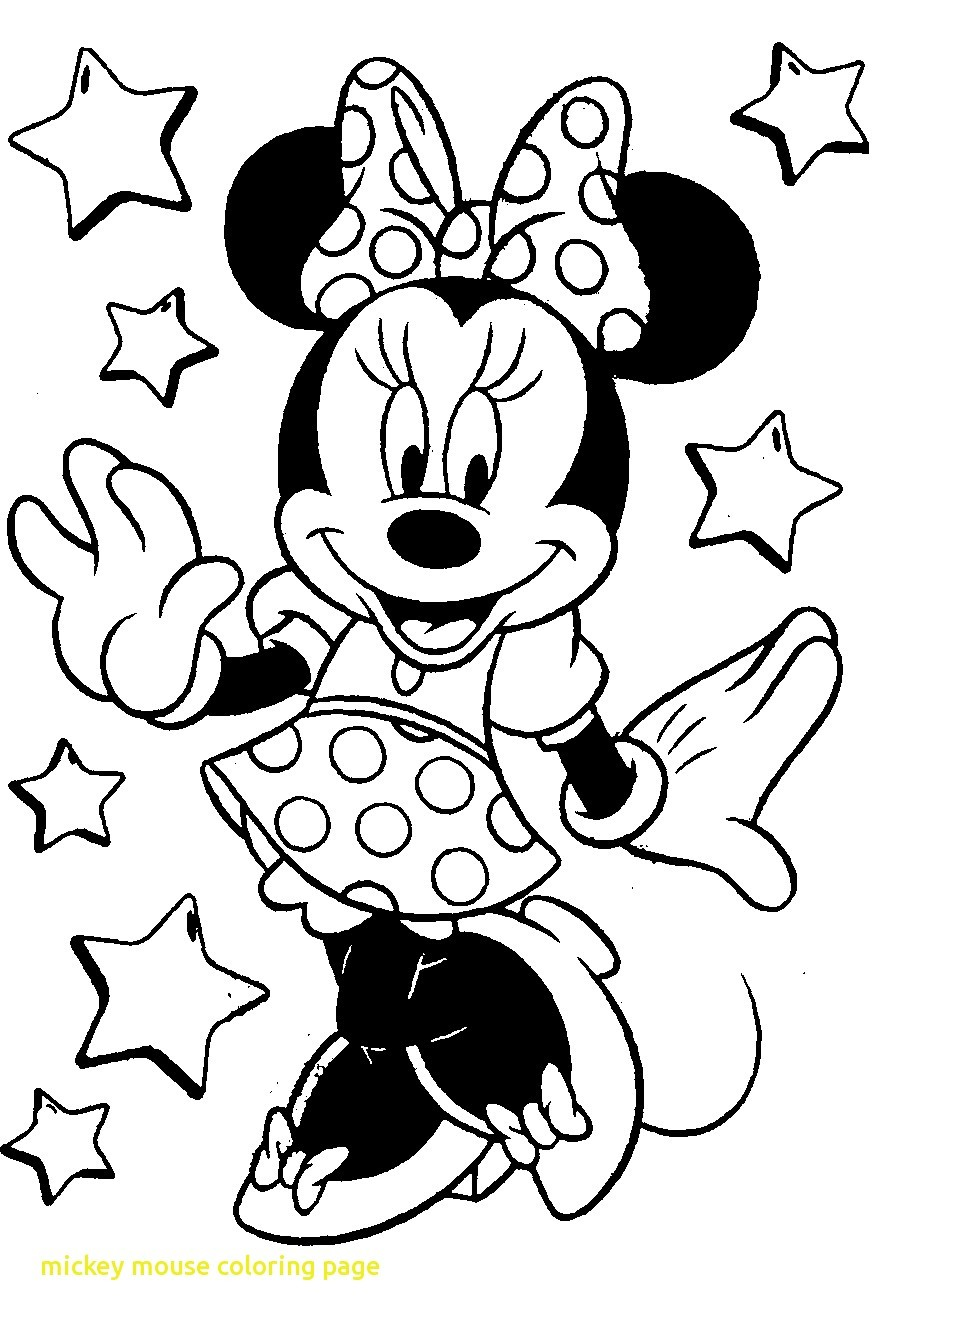 Mickey Mouse Baseball Coloring Pages At Getdrawings Com Free For